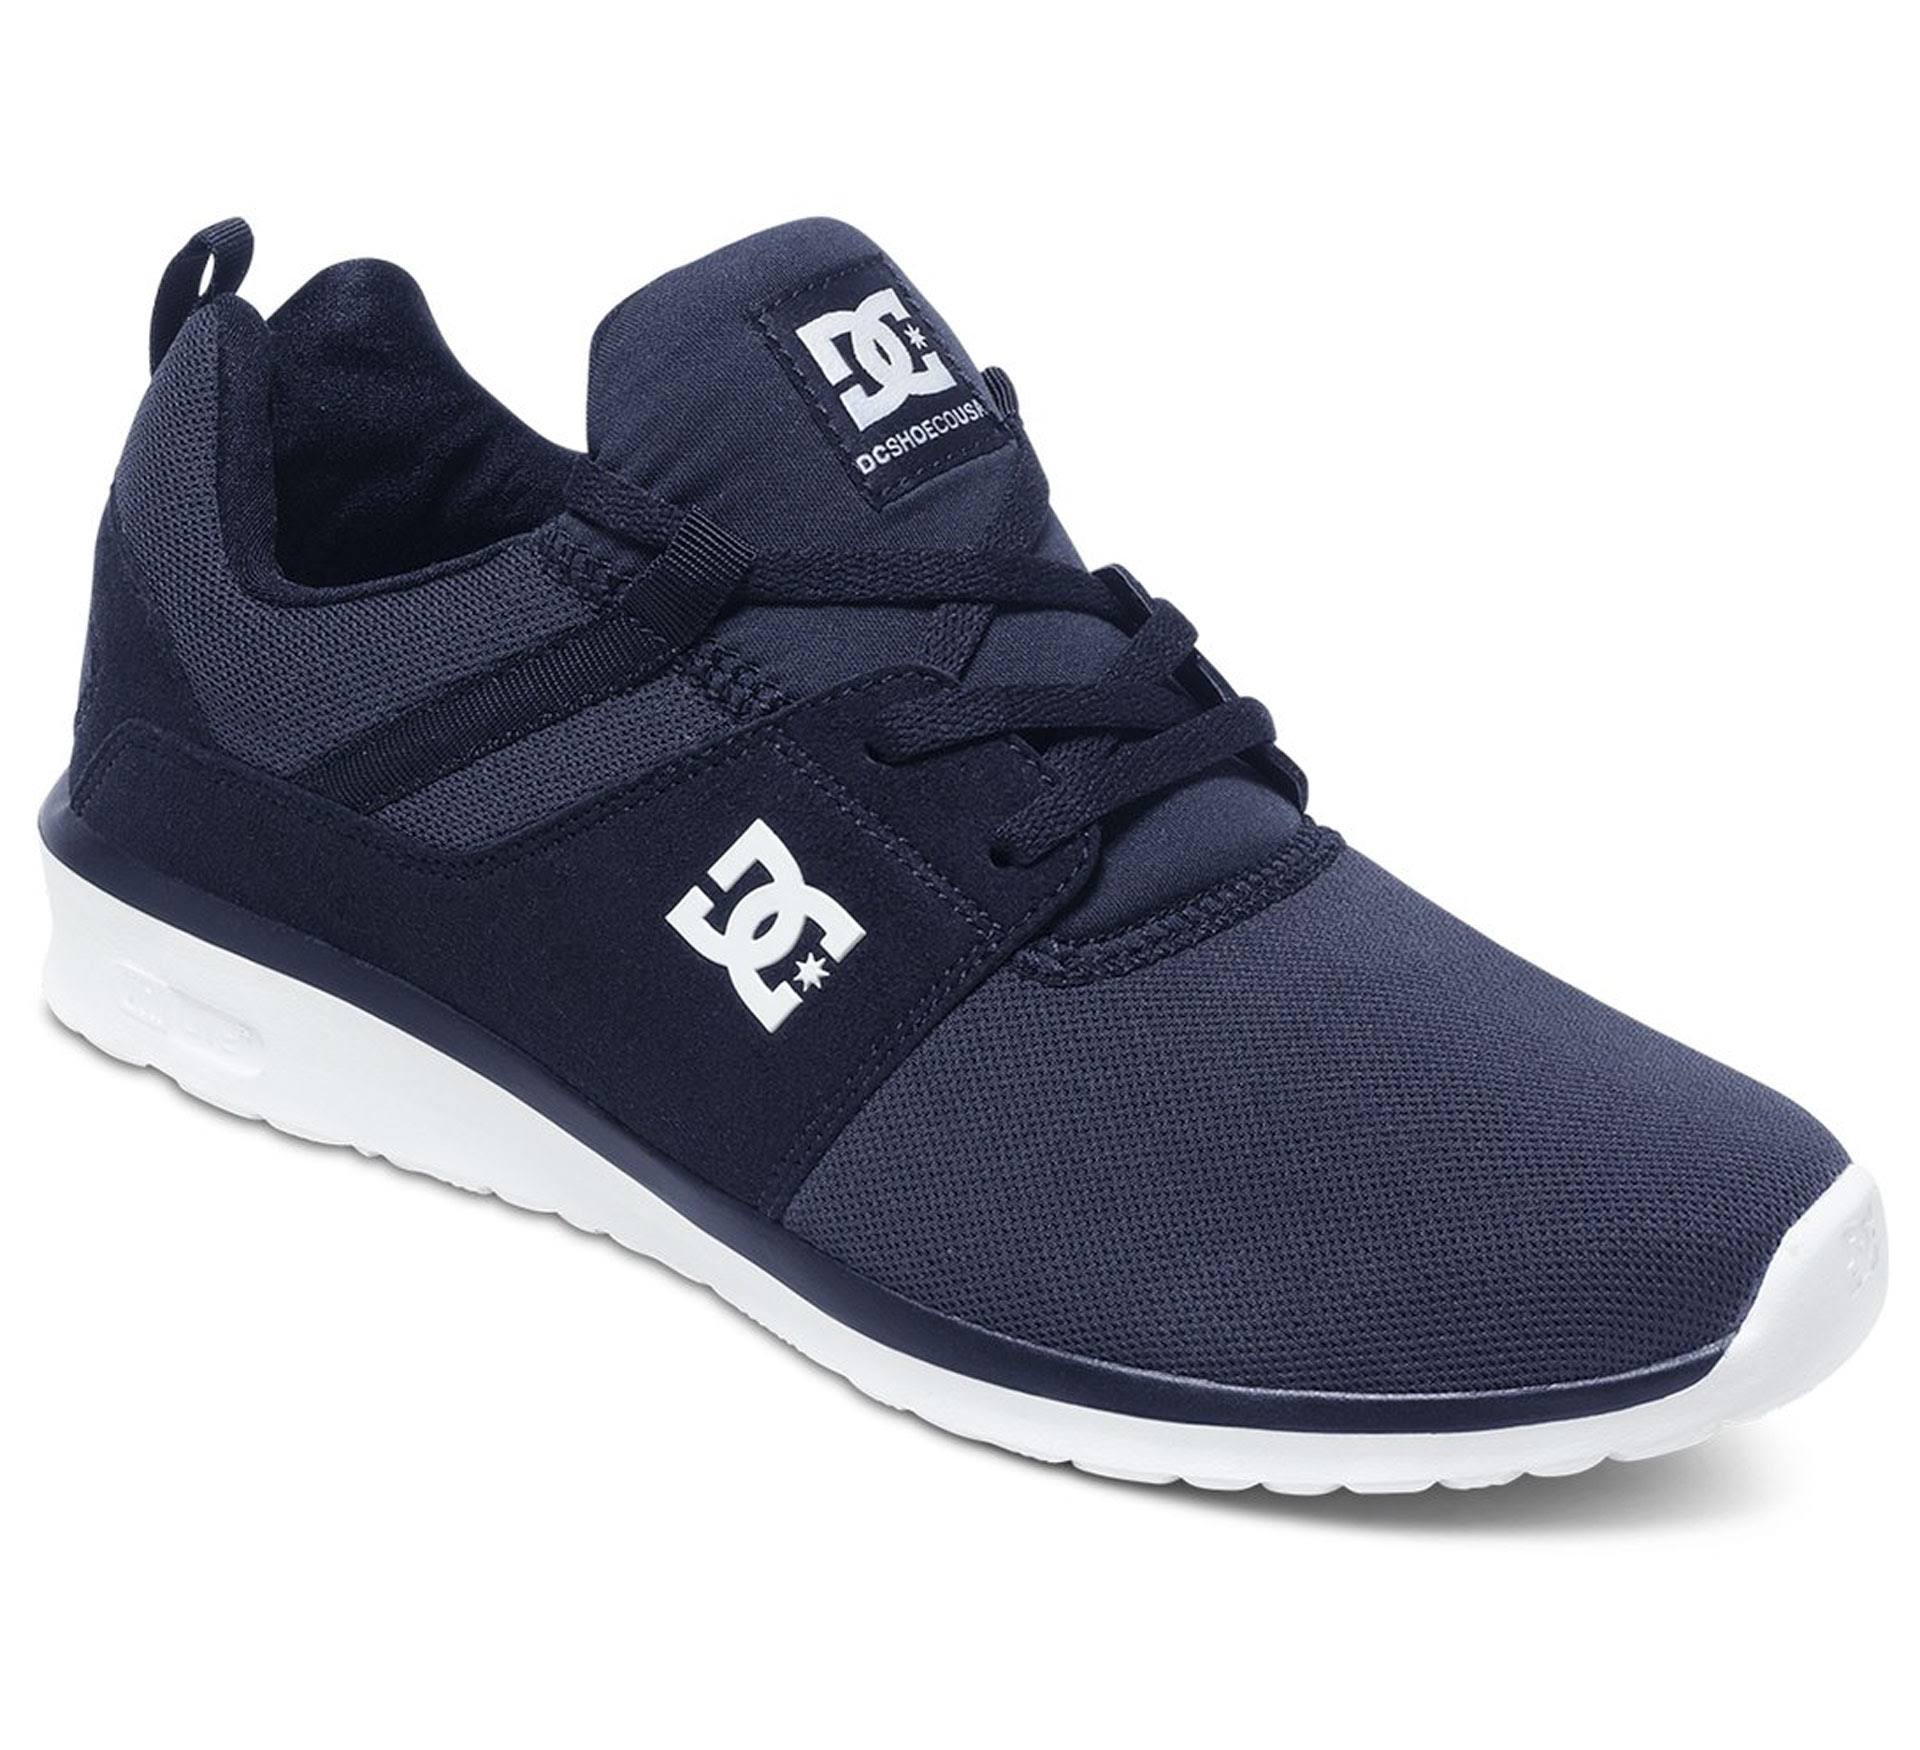 Shoes Heathrow Heathrow Blauw Blauw Dc Dc Heathrow Blauw Shoes Dc Shoes Shoes Dc TFKJc13l